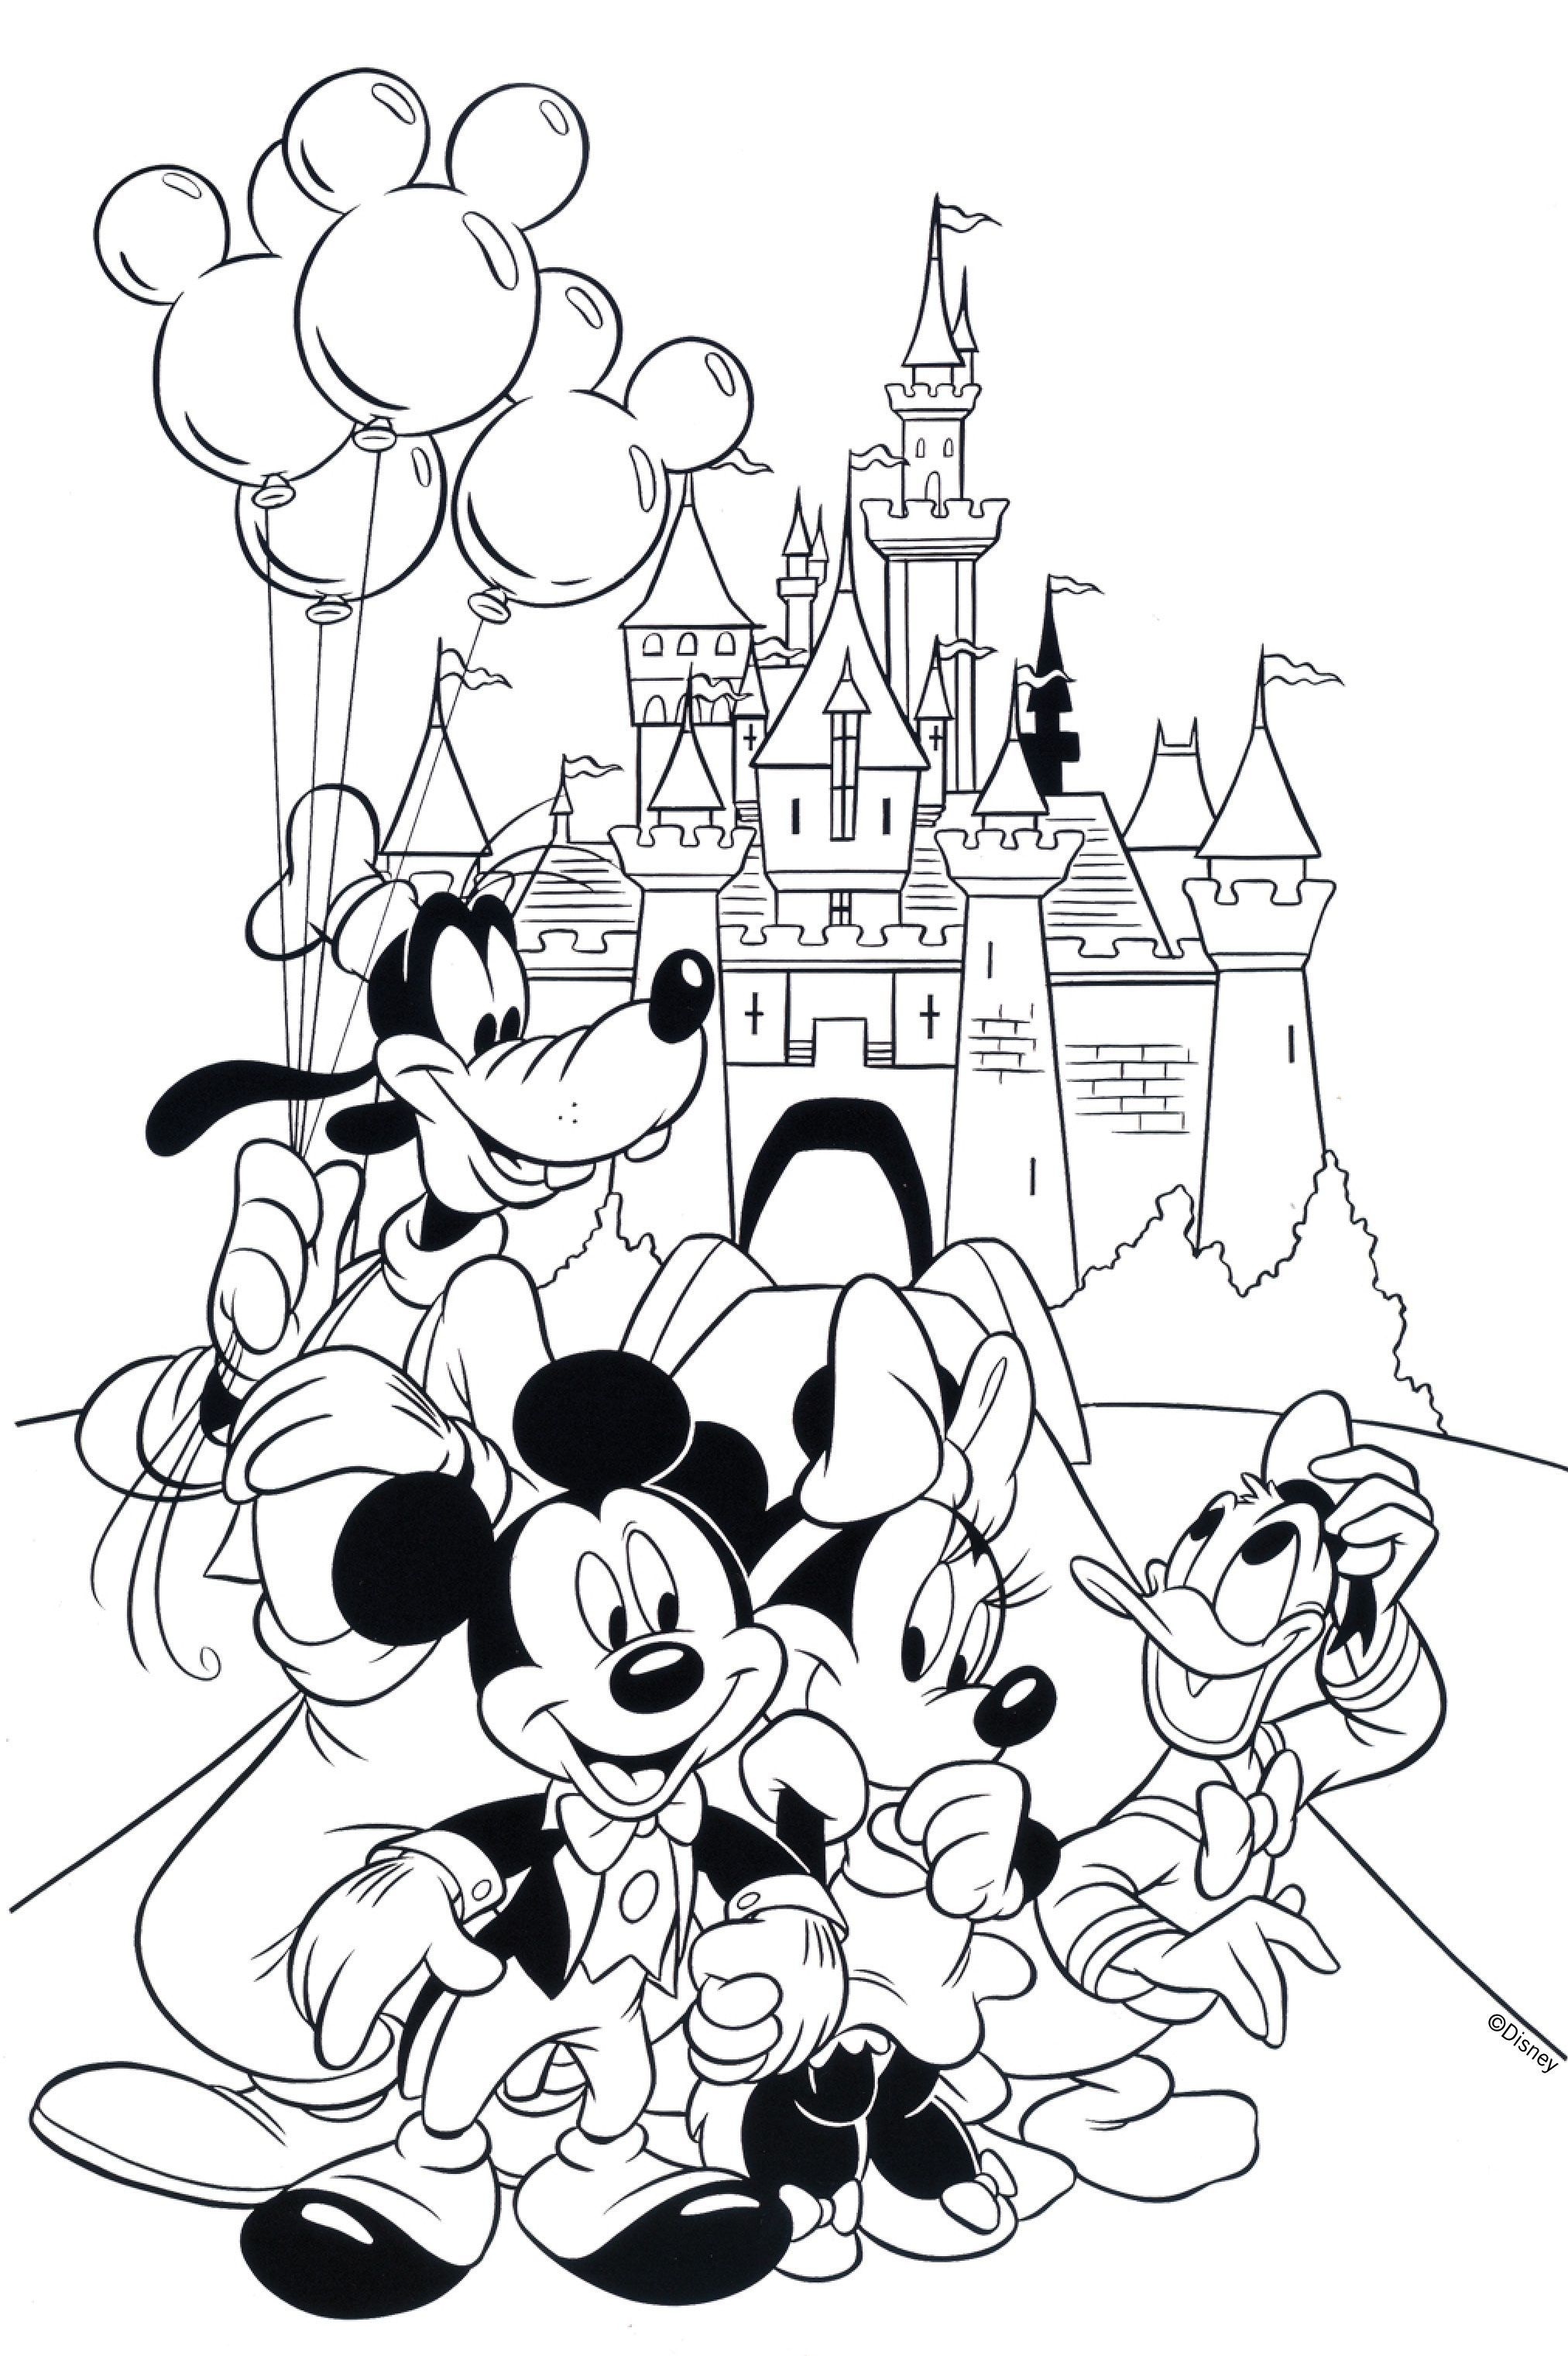 Disney Coloring Page Coloring Pages Allow Kids To Accompany Their Favorite Character Mickey Mouse Coloring Pages Disney Coloring Pages Mickey Coloring Pages